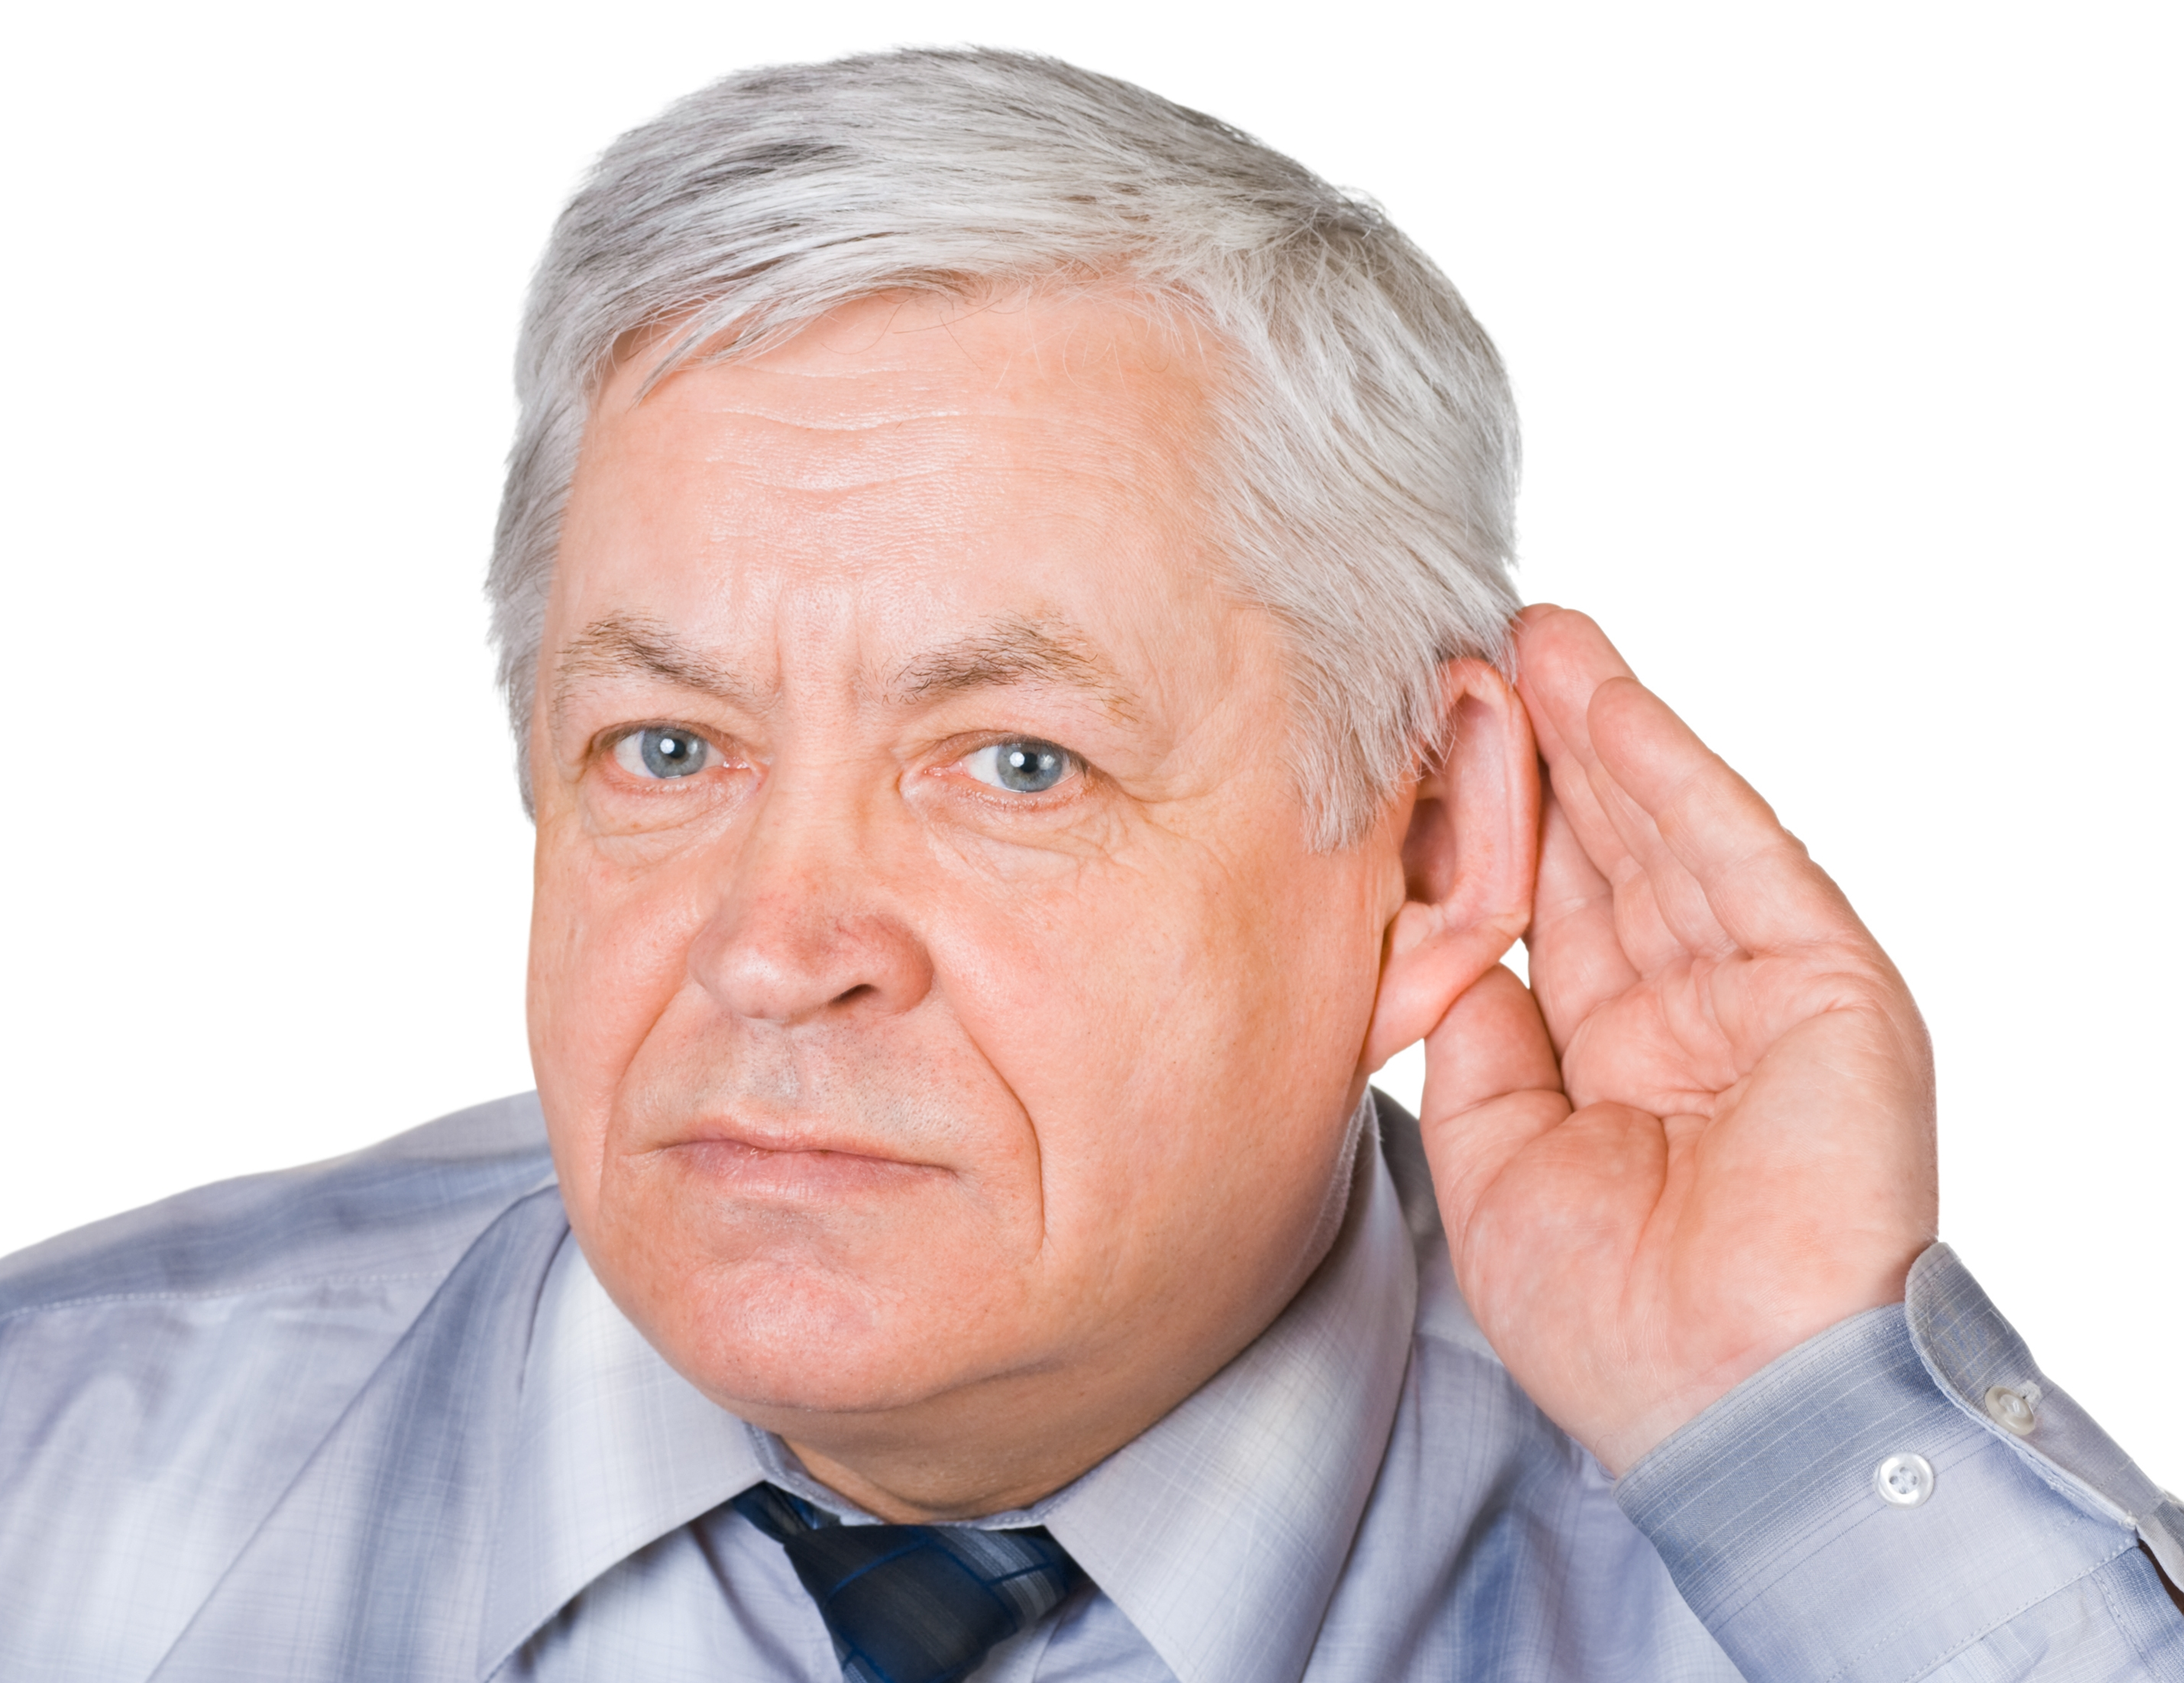 How to Detect Hearing Loss